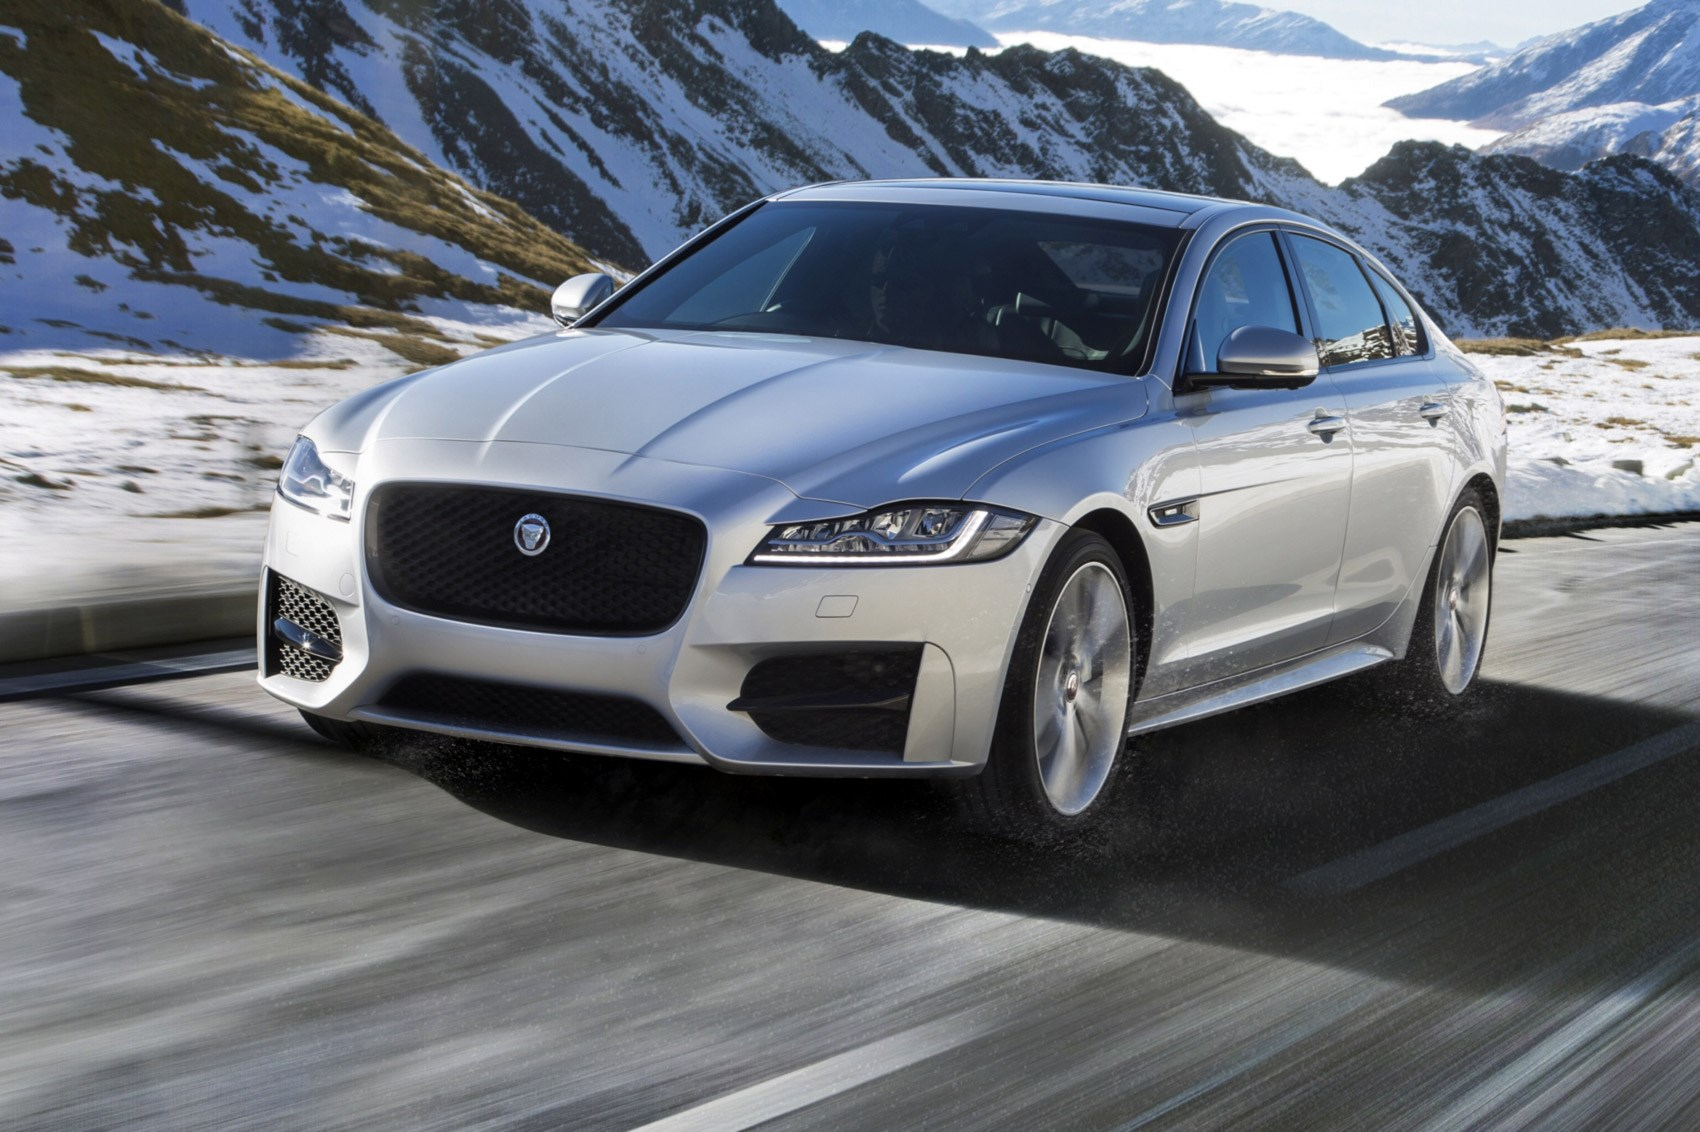 Jaguar Gets A Grip With New Allwheeldrive XF By CAR Magazine - All wheel drive jaguar